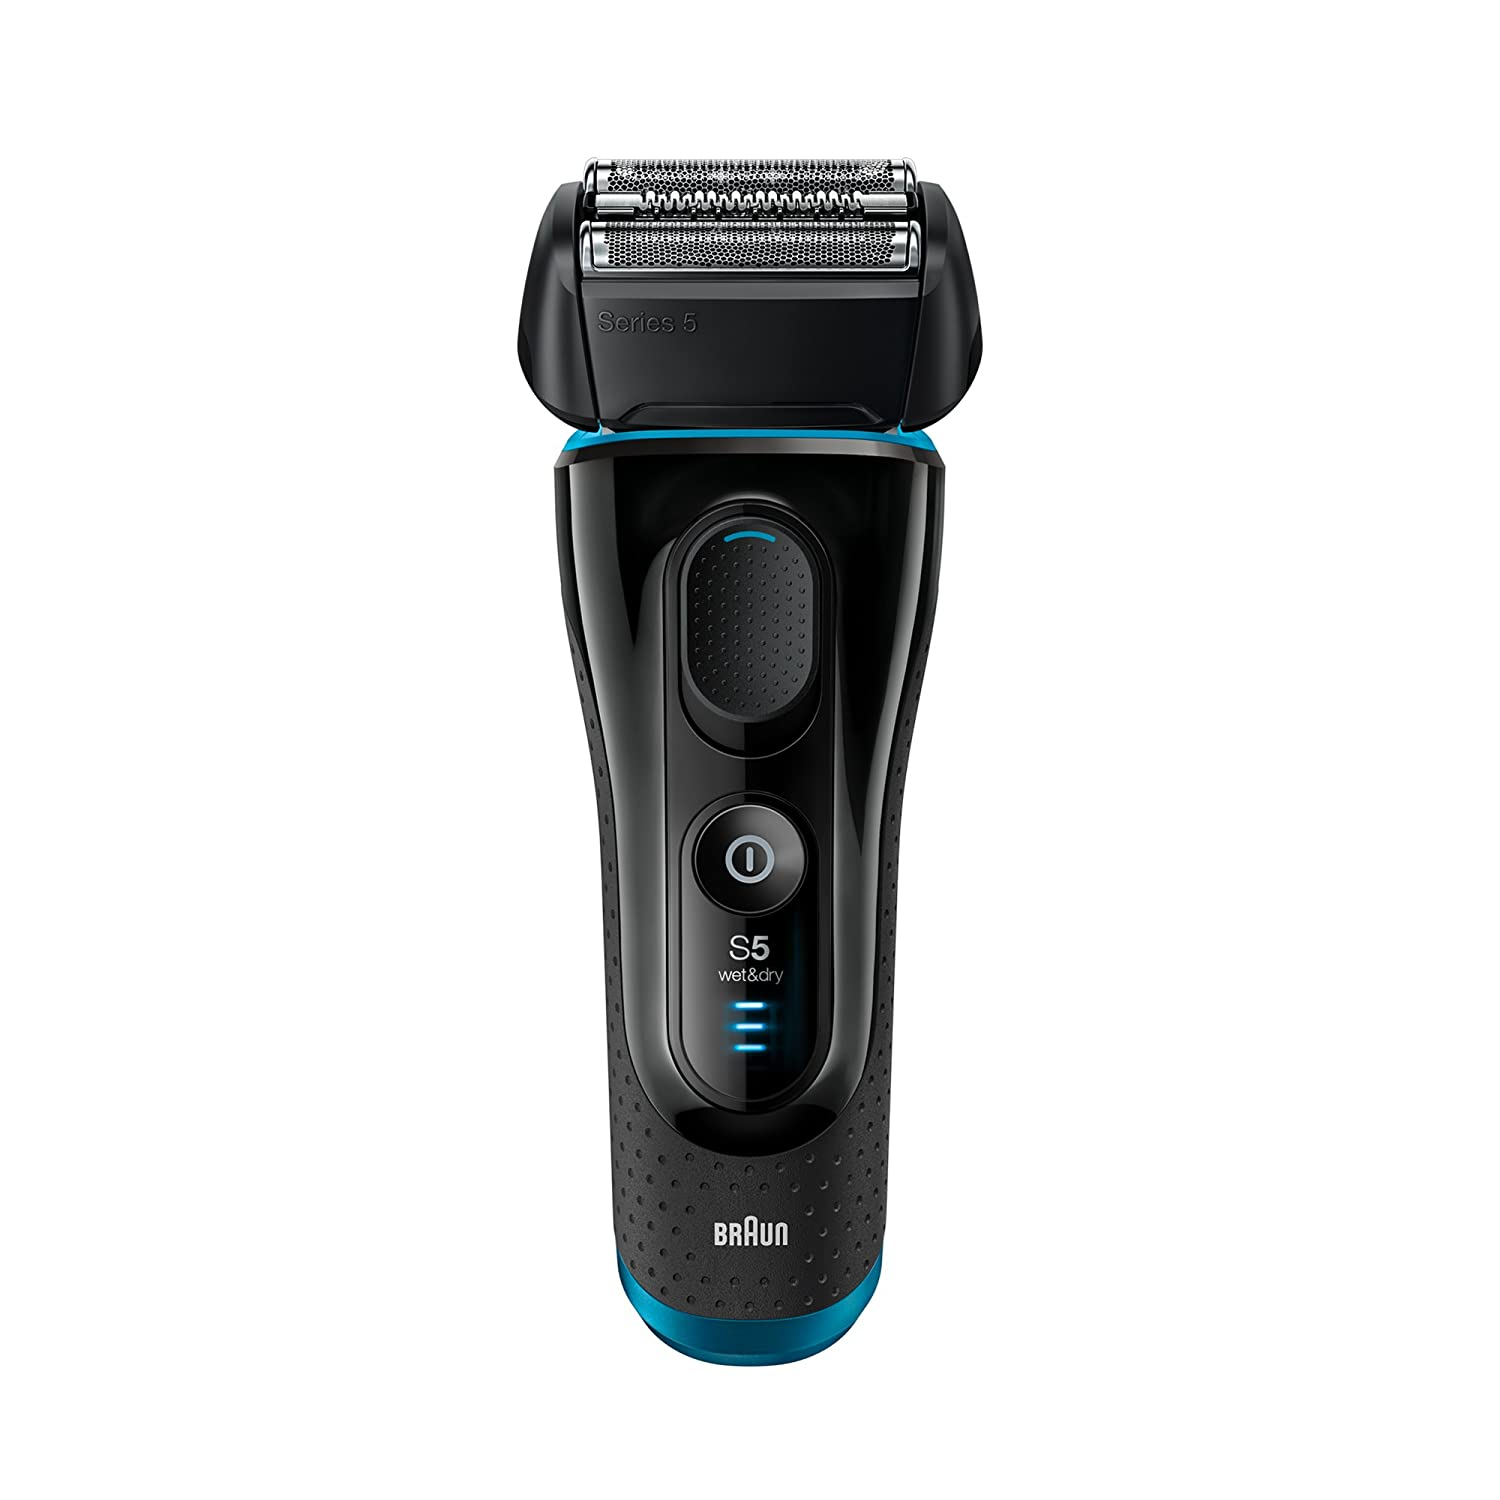 Electric Shaver for Men by Braun Series 5 5140s Cordless Electric Razor, Precision Trimmer, Flexible Shaving Head, Wet & Dry Foil Shaver, Black